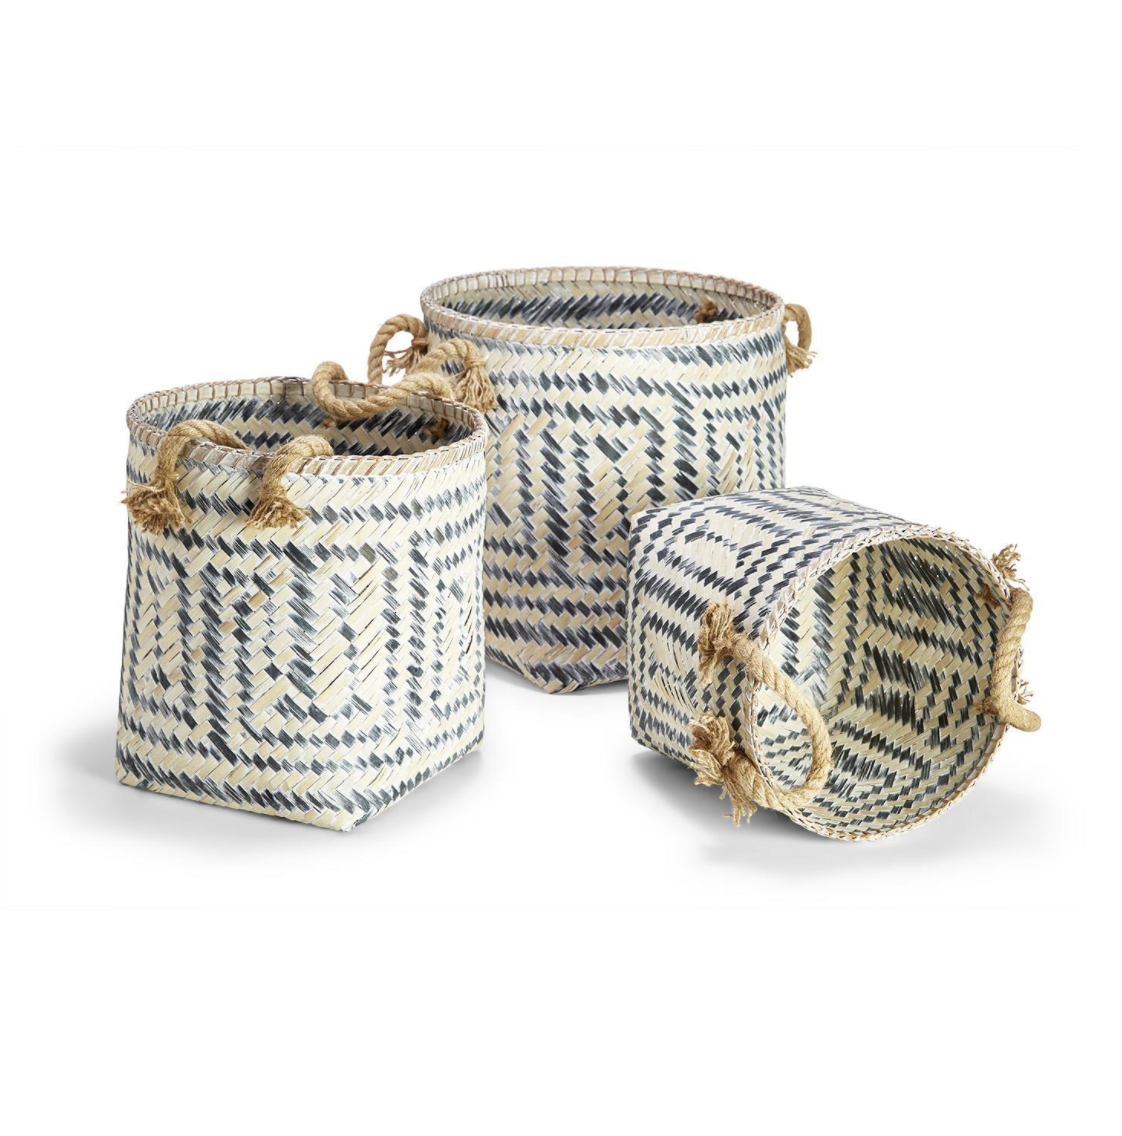 Perivilos Hand-Crafted Baskets with Jute Rope